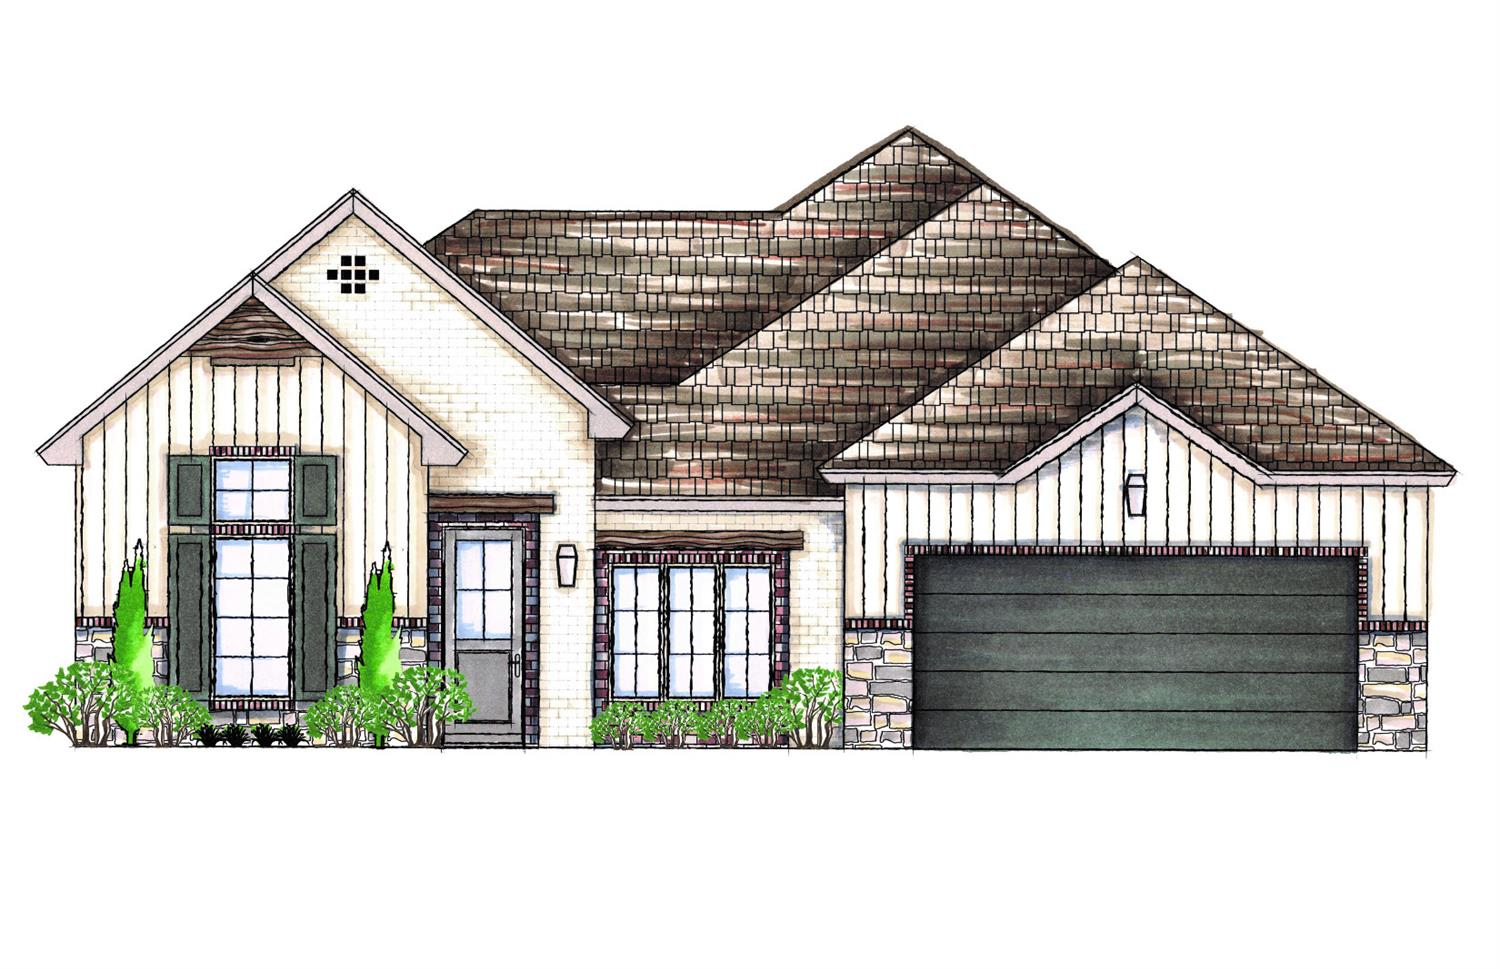 Beautiful 3/2/2 in desirable Stonewood Estates by award winning builder David Rogers Homes! This well designed floor plan features a large family room with vaulted ceiling, spacious kitchen, great natural light, and large back patio. The isolated master suite is sure impress with built in linen storage, separate tub and shower, and huge walk in closet. Don't miss your chance to make this beautiful home yours!Call builder for more information or to schedule a tour of this beautiful home.